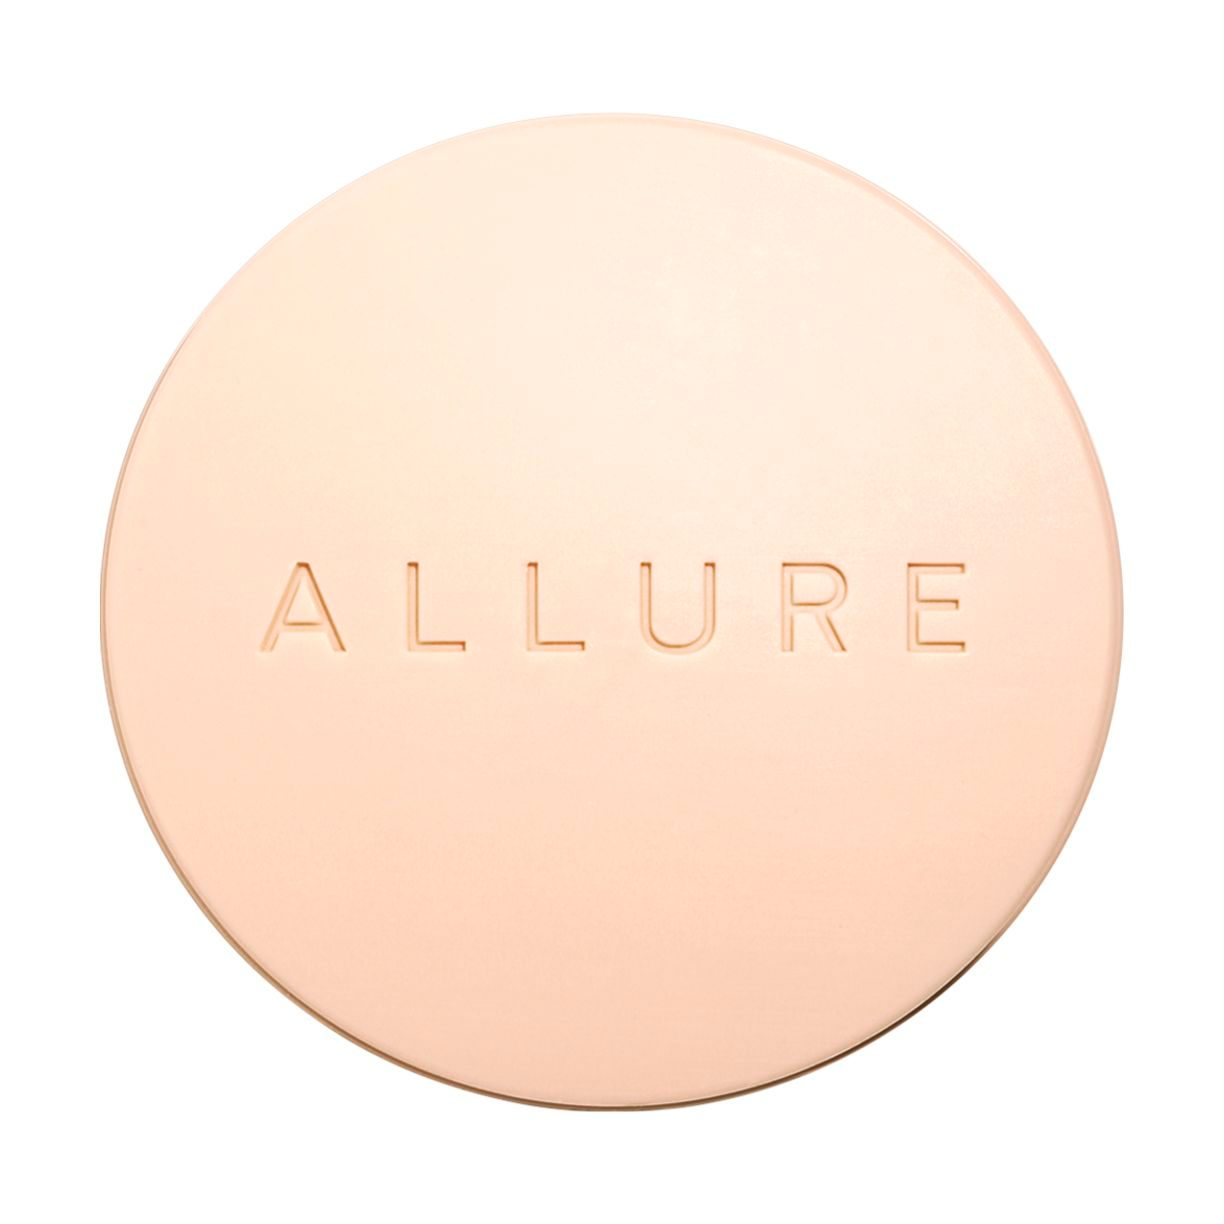 ALLURE BADZEEP 150g